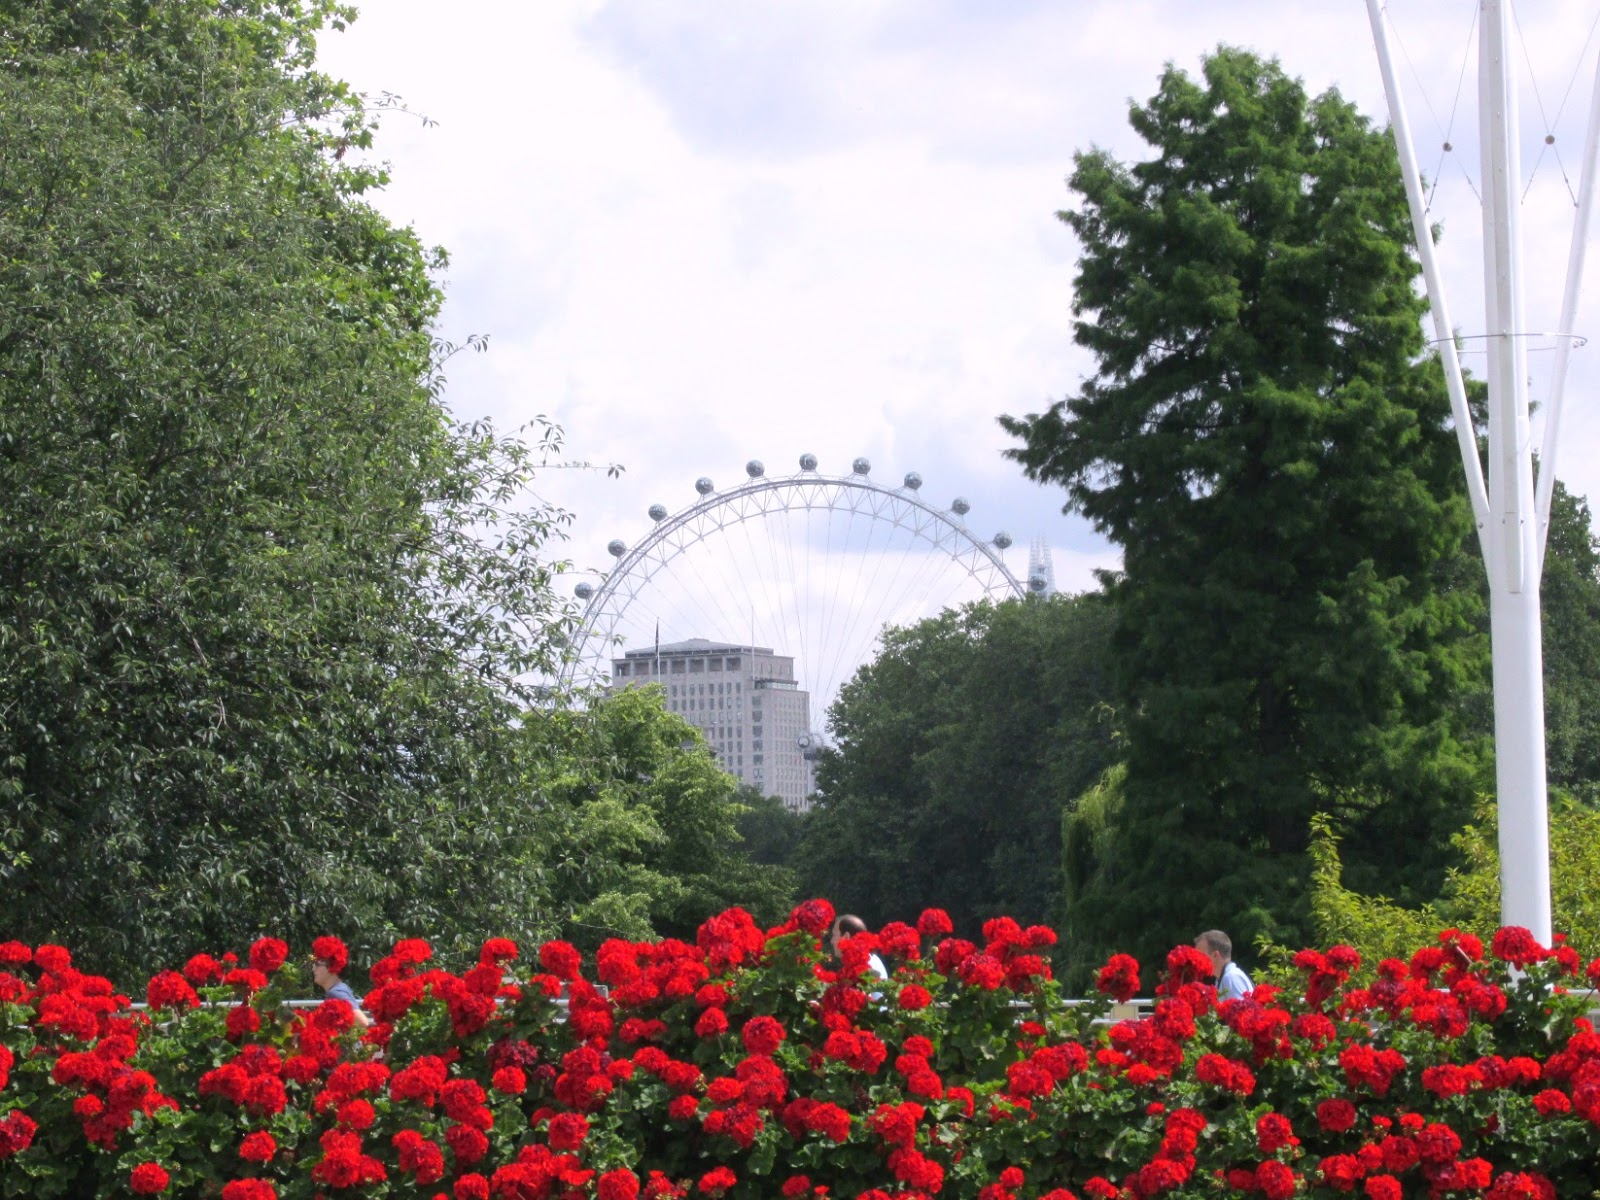 10 things to do in London, London Eye